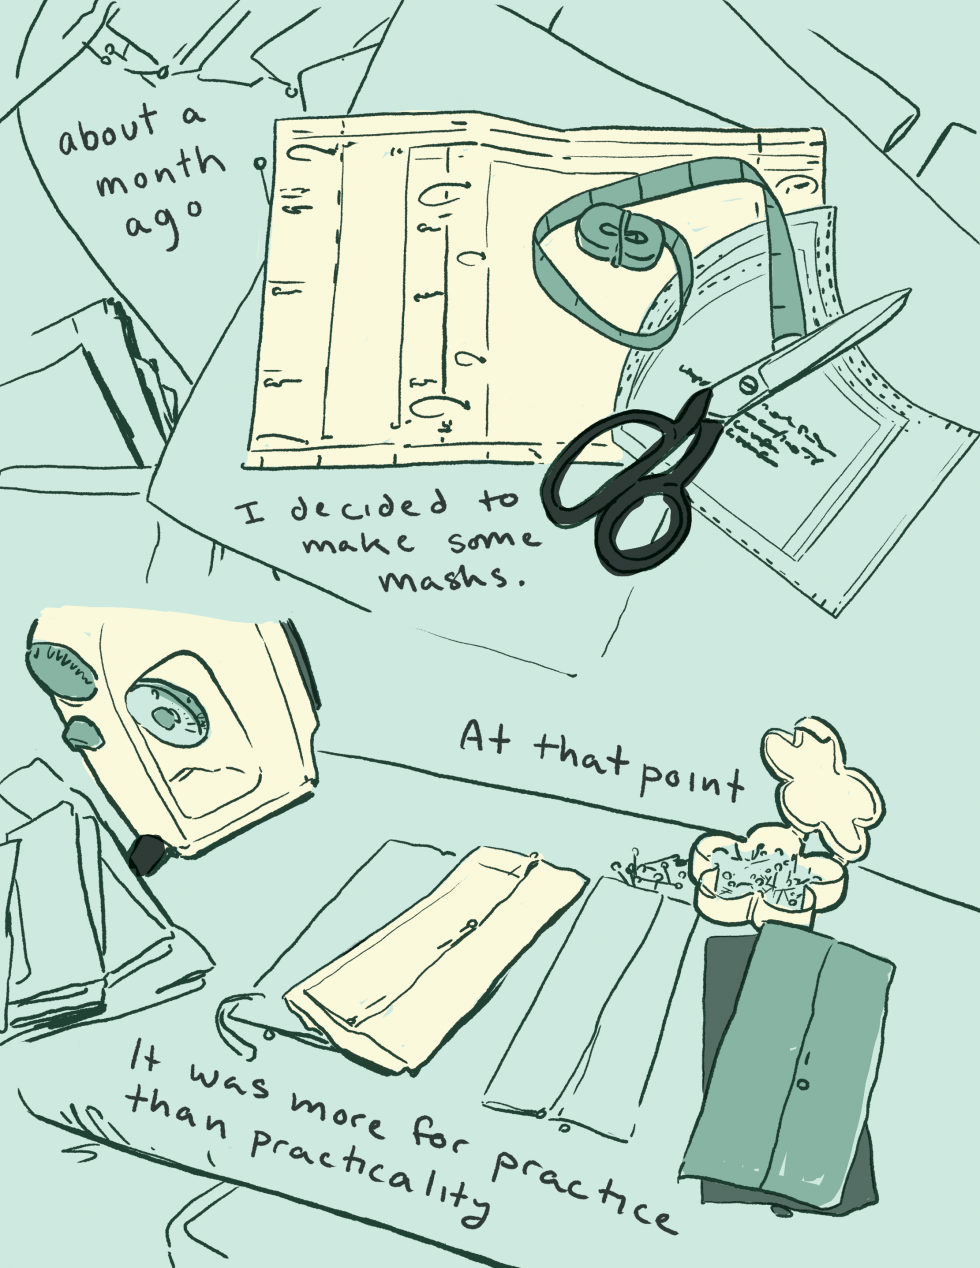 "Comic page reading, ""about a month ago I decided to make some masks. At that point it was more for practice than practicality"" Art is rendered in shades of blue and shows an ironing board with several sewing and fabric related items in two loose"